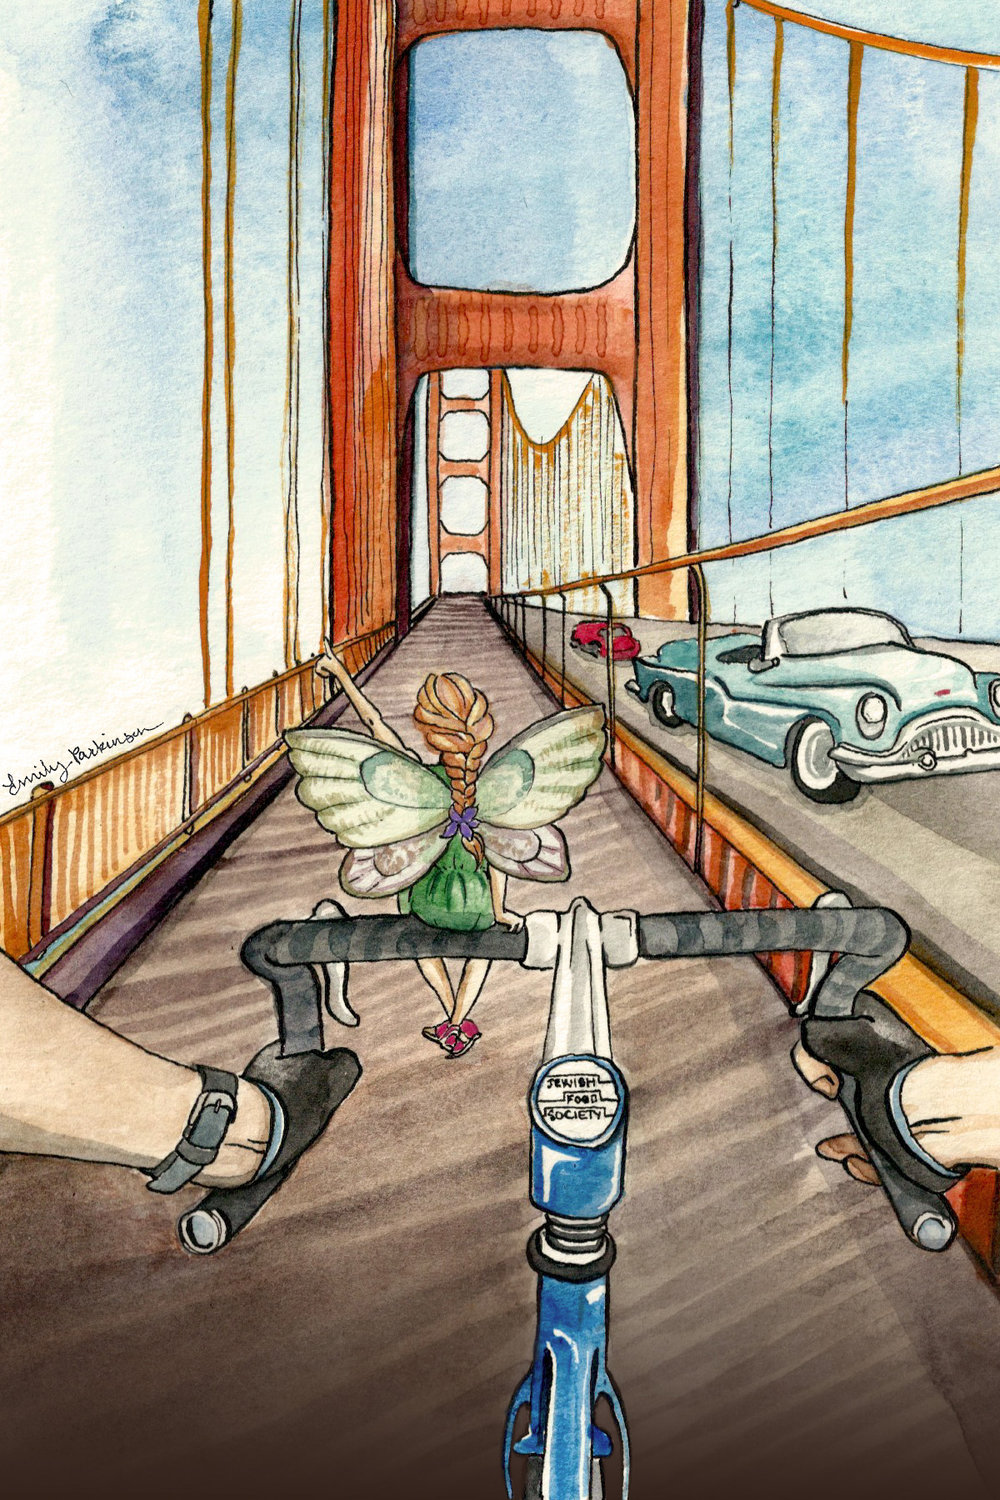 San Francisco Edition: Biking the Golden Gate